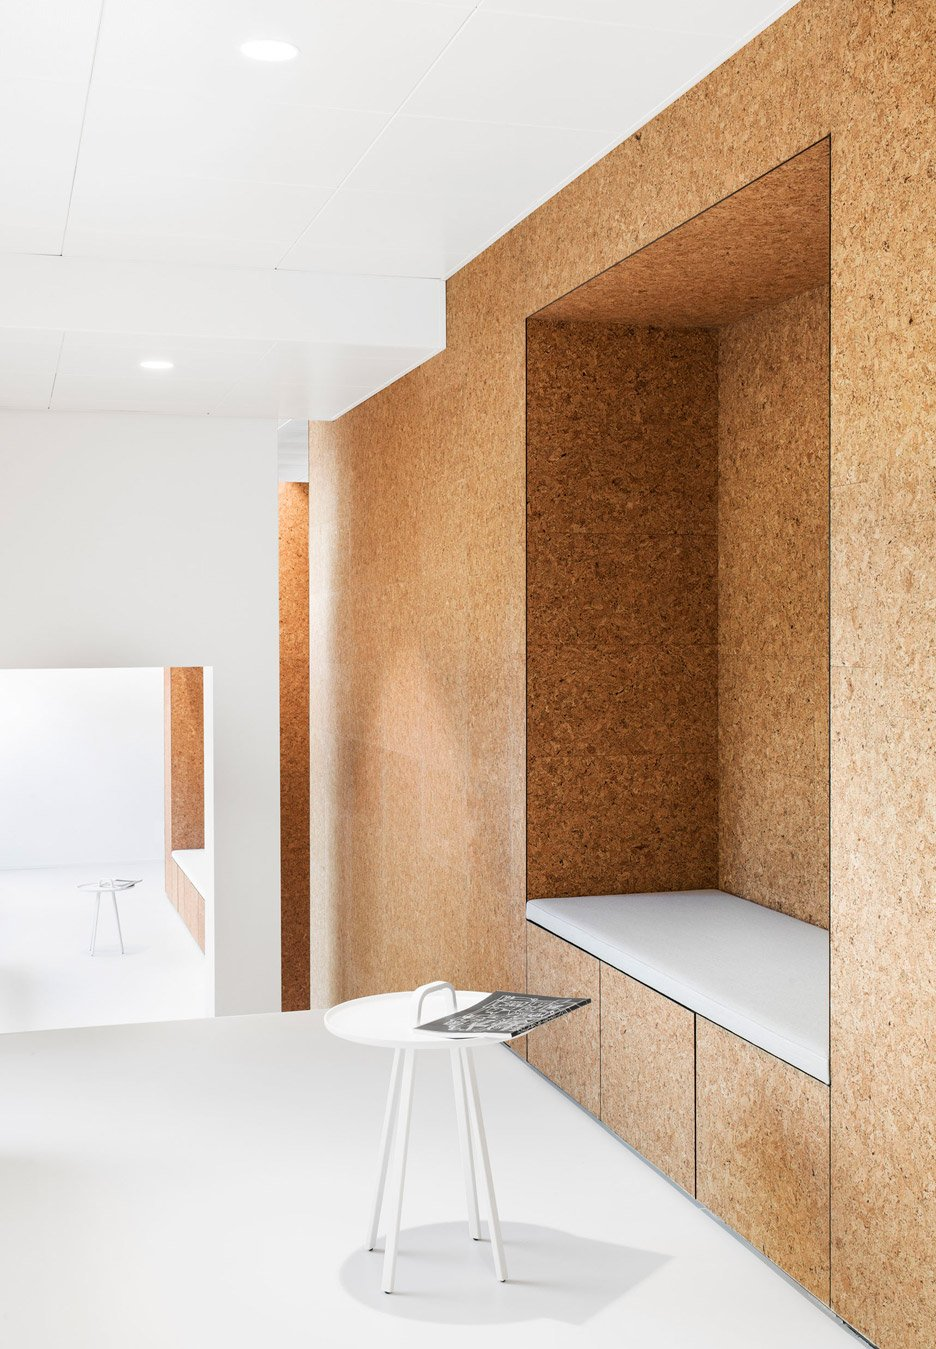 3novices dost converts 1960s restaurant into heart clinic with cork cubicles 3noviceseurope